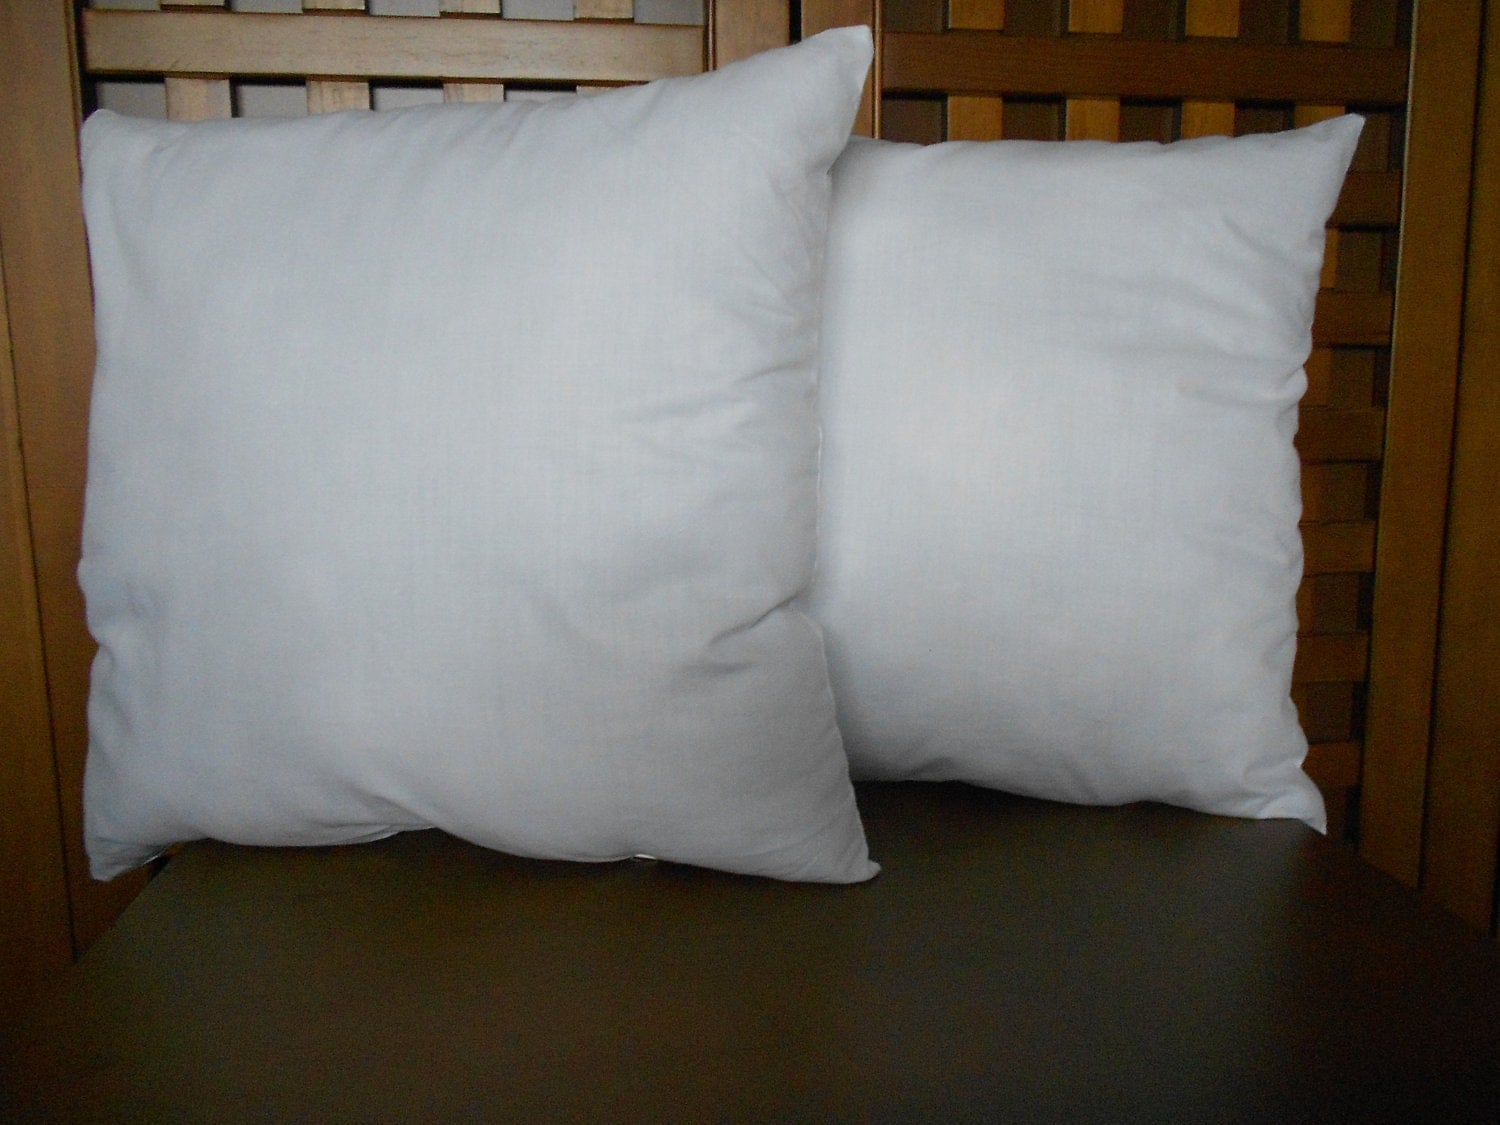 pilppc polyester form pillow poly cotton fill cover forms x